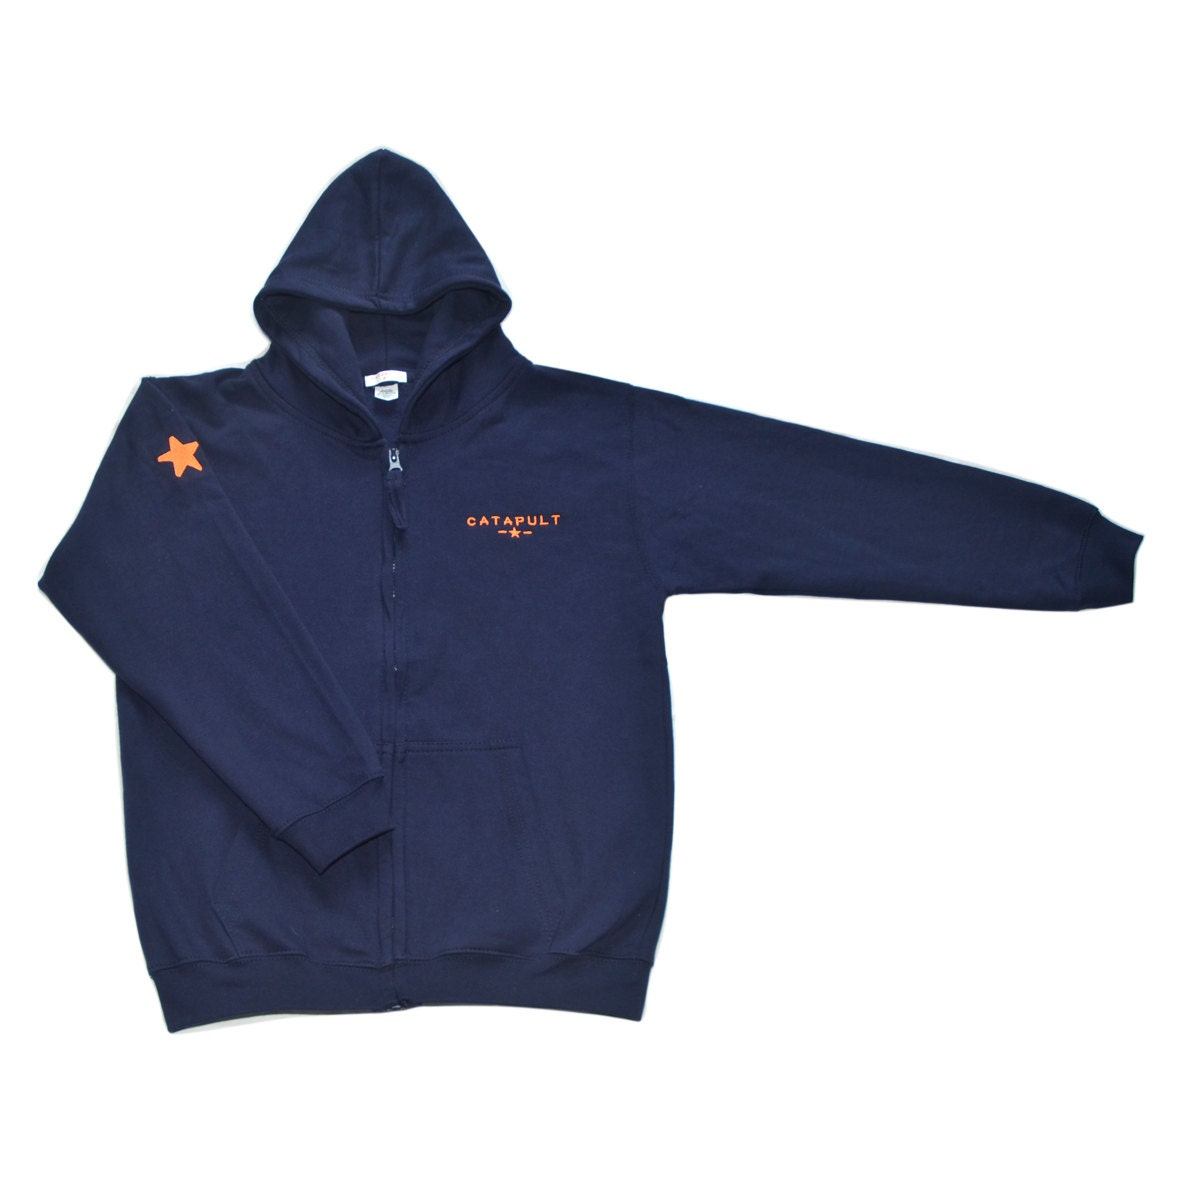 Catapult Zip Up Hoodie navy blue embroidered orange catapult and star on sleeve funky design for cool kids London design